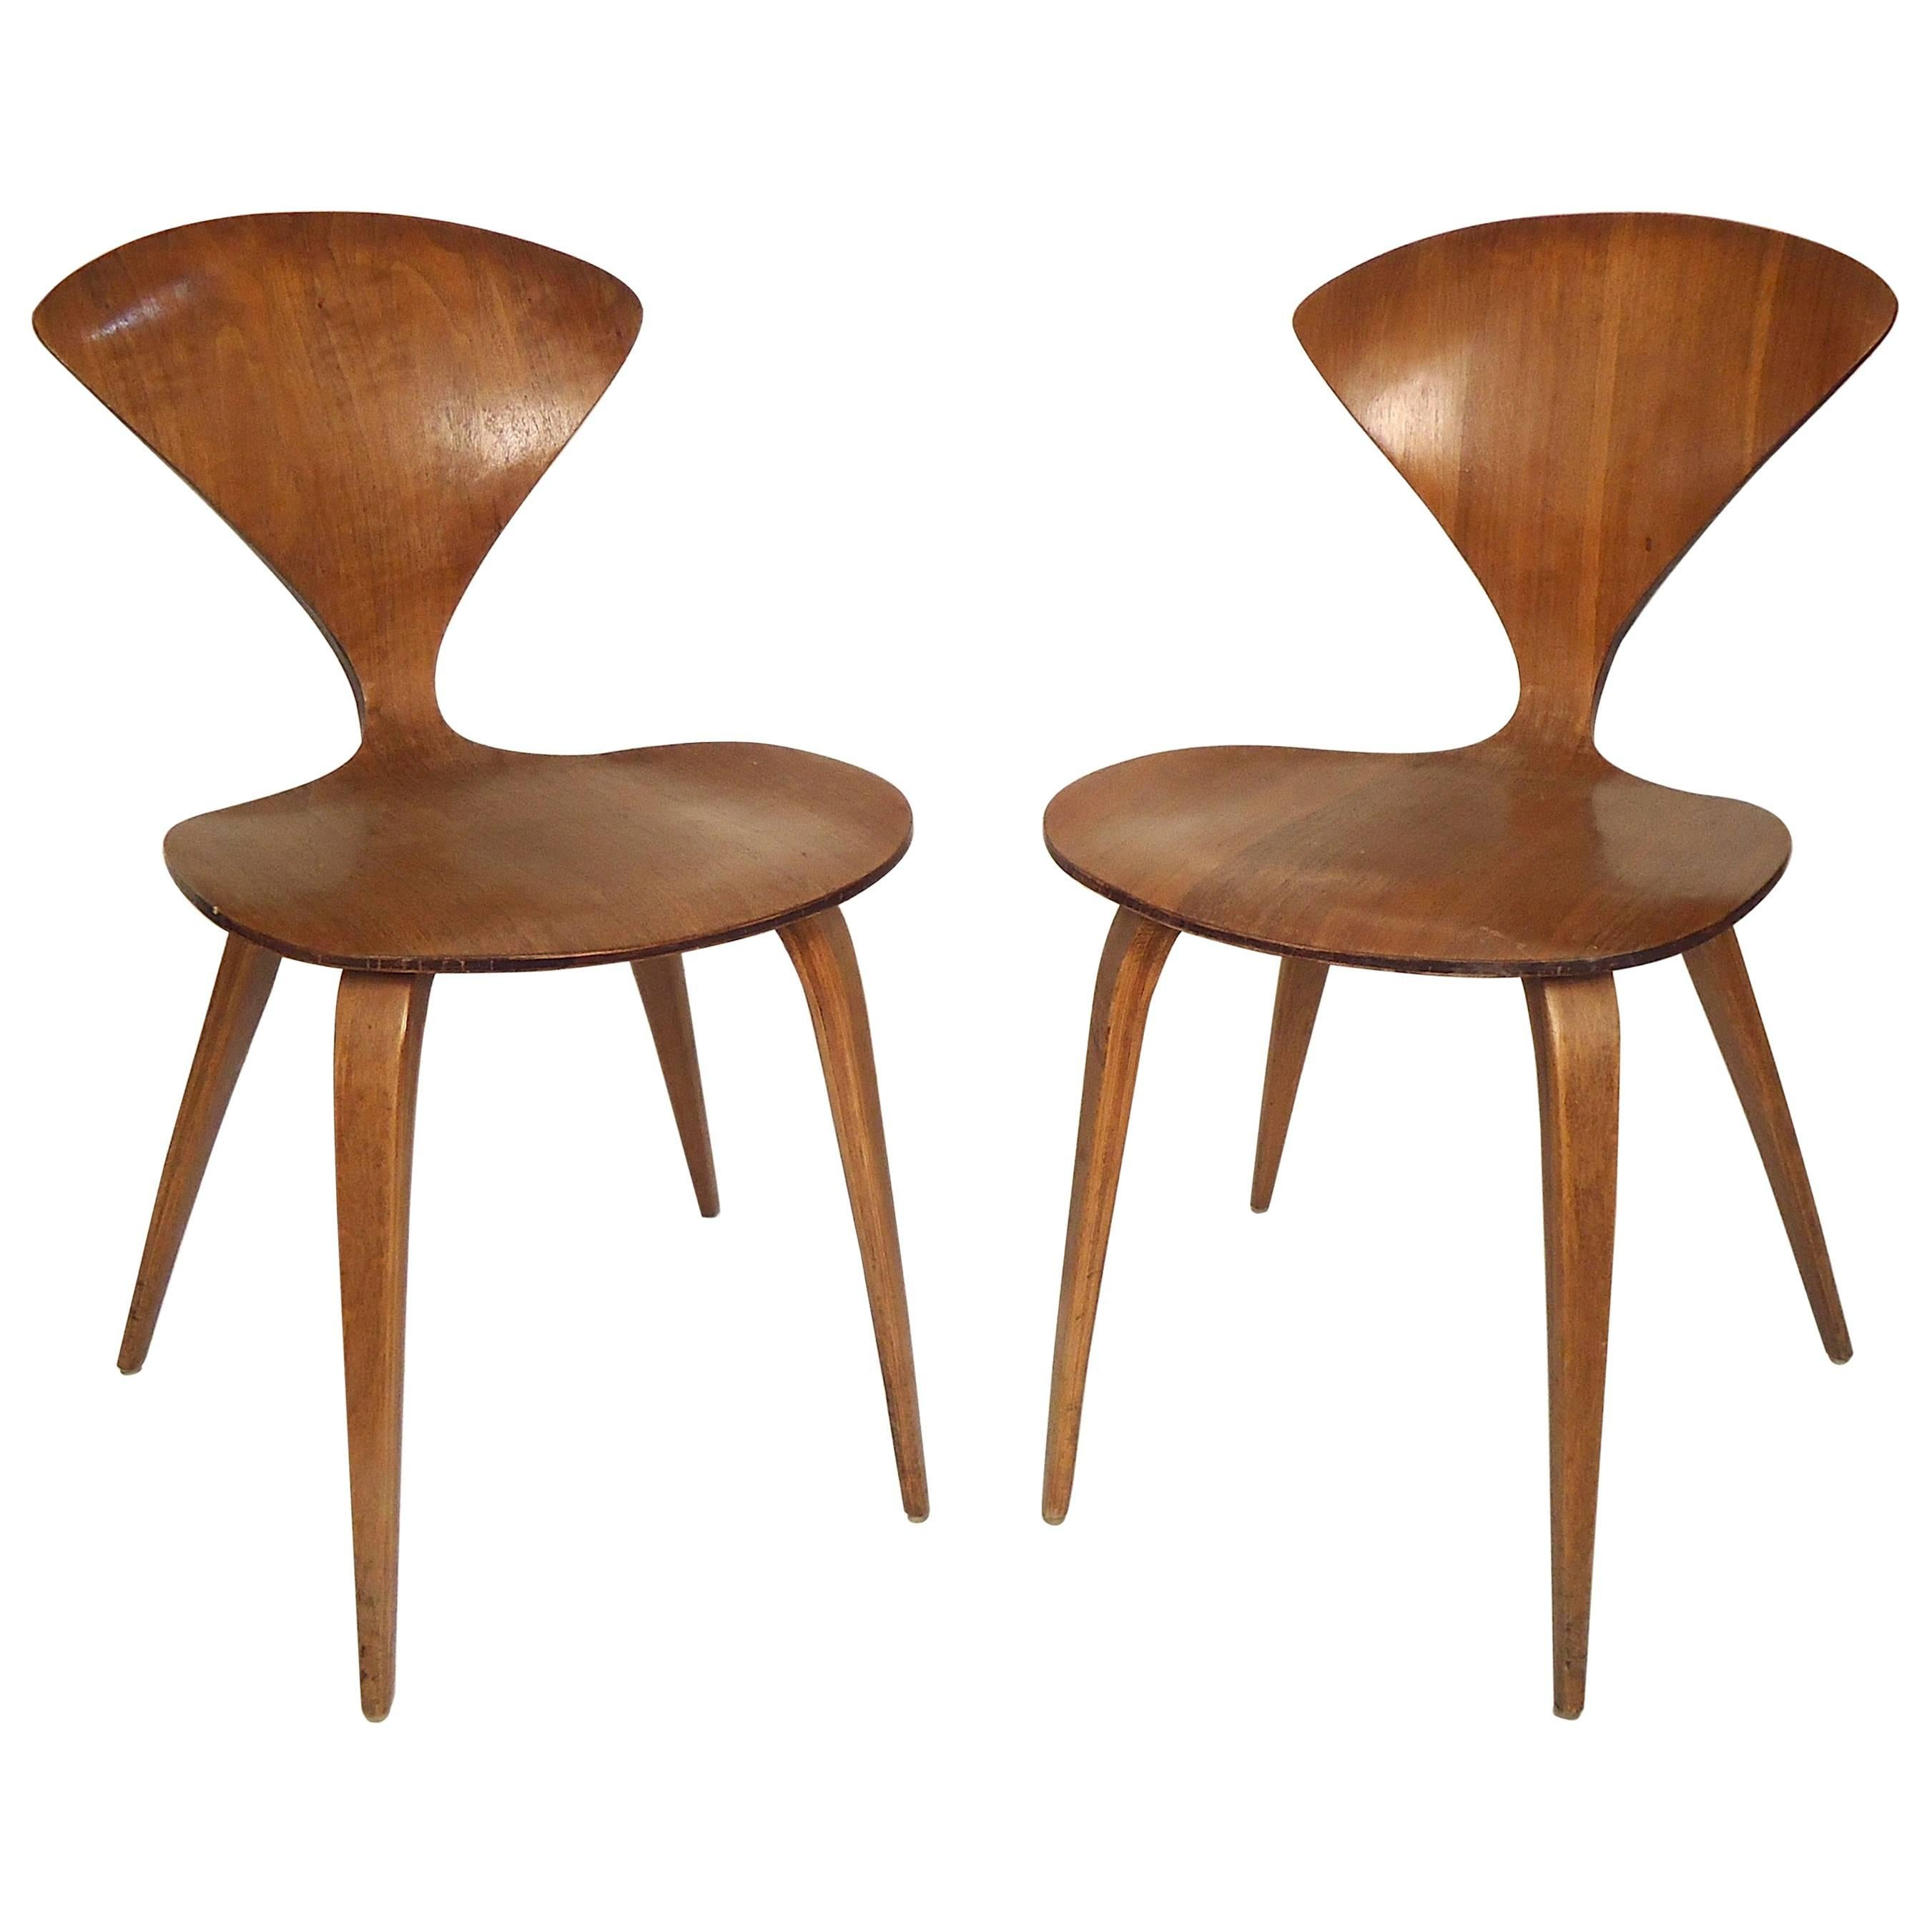 plycraft bentwood chairs by norman cherner 1